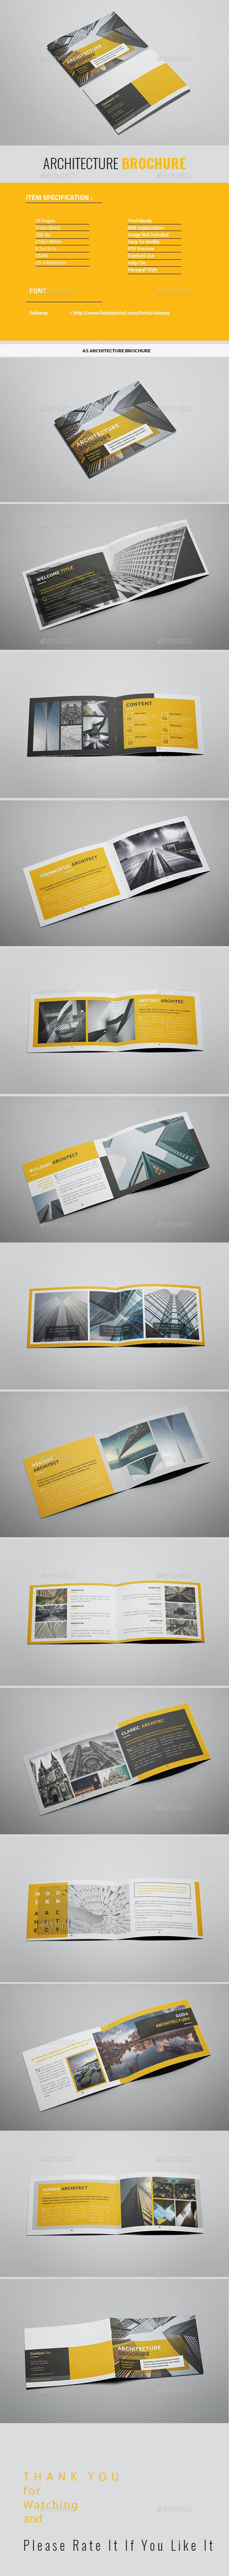 a5 yellow architecture brochure by tripleef graphicriver